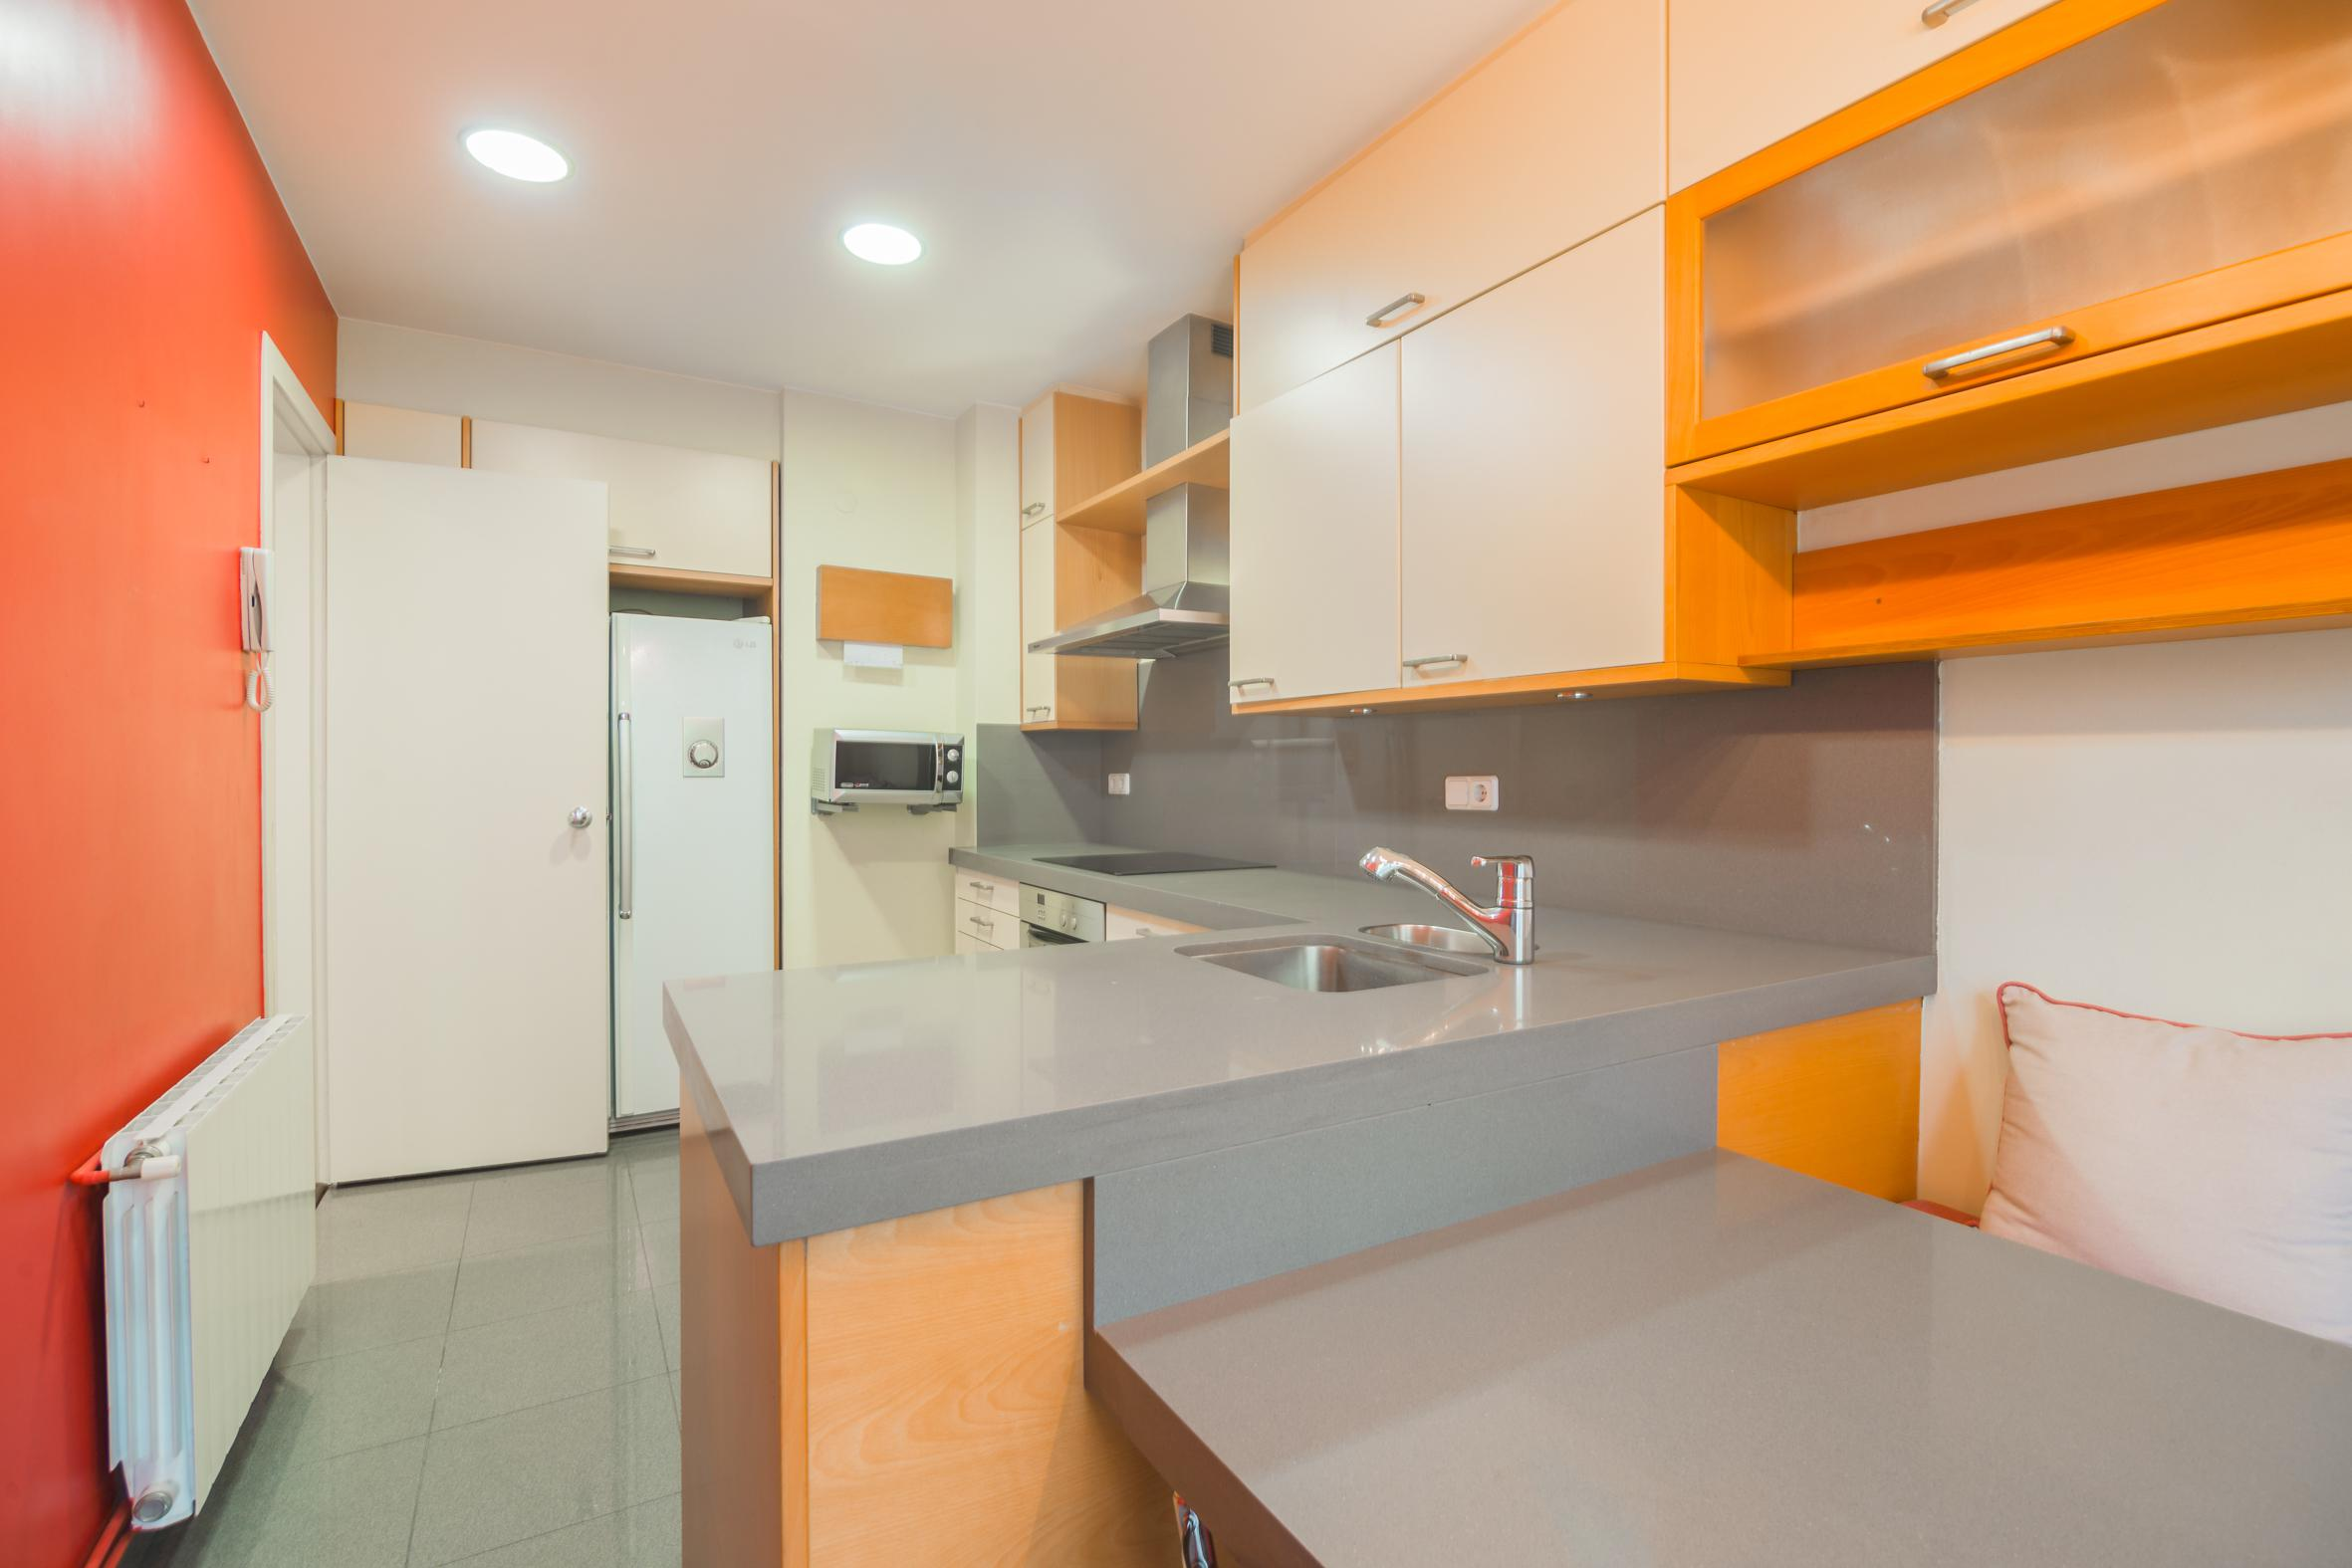 246902 Flat for sale in Les Corts, Pedralbes 25